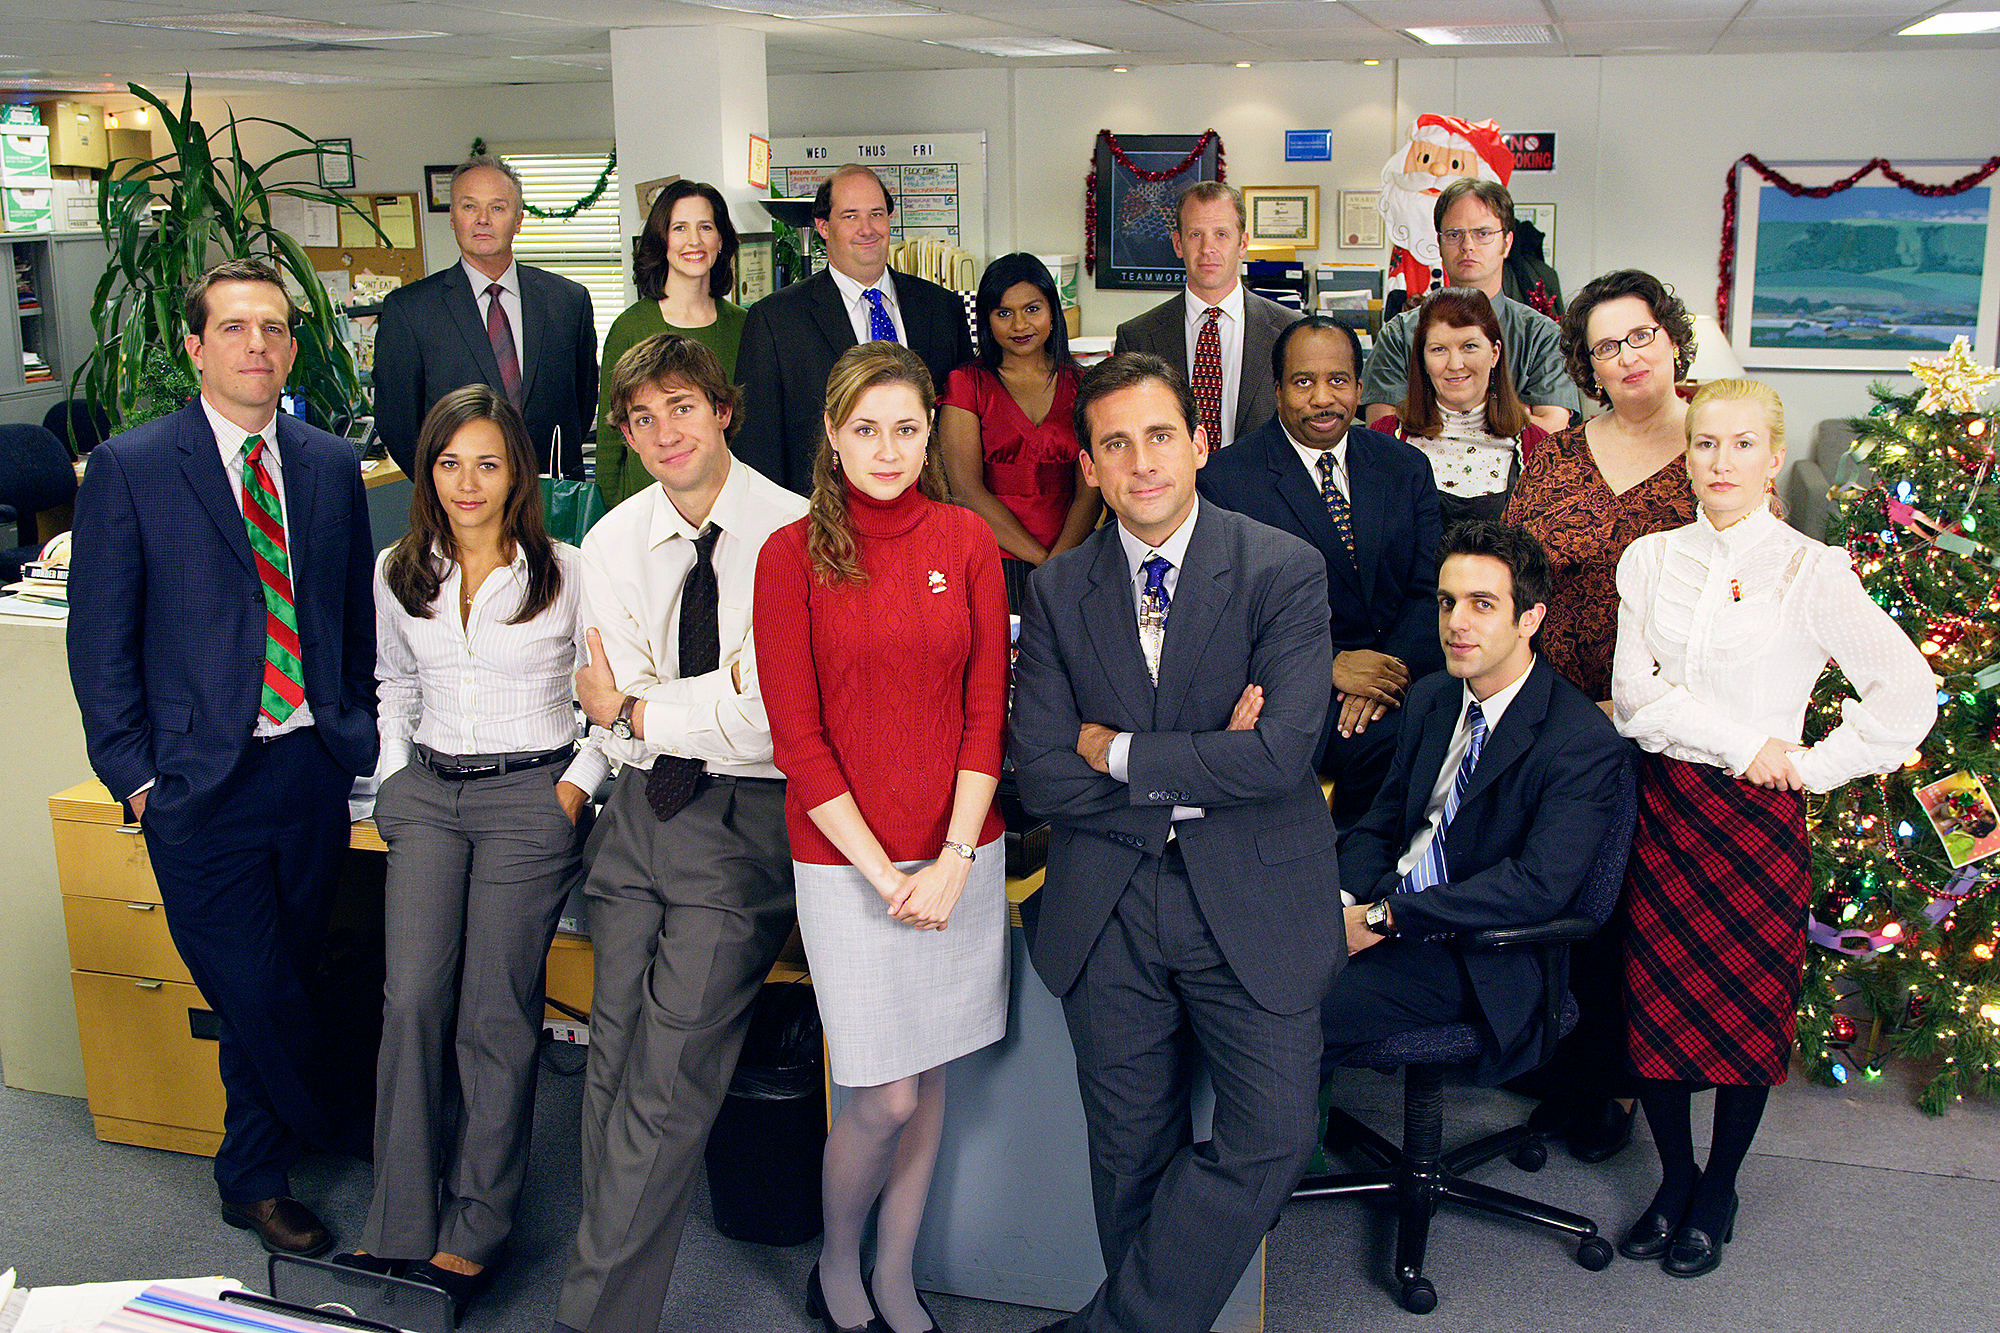 The Office Revival in Early Development For Late 2018 Premiere